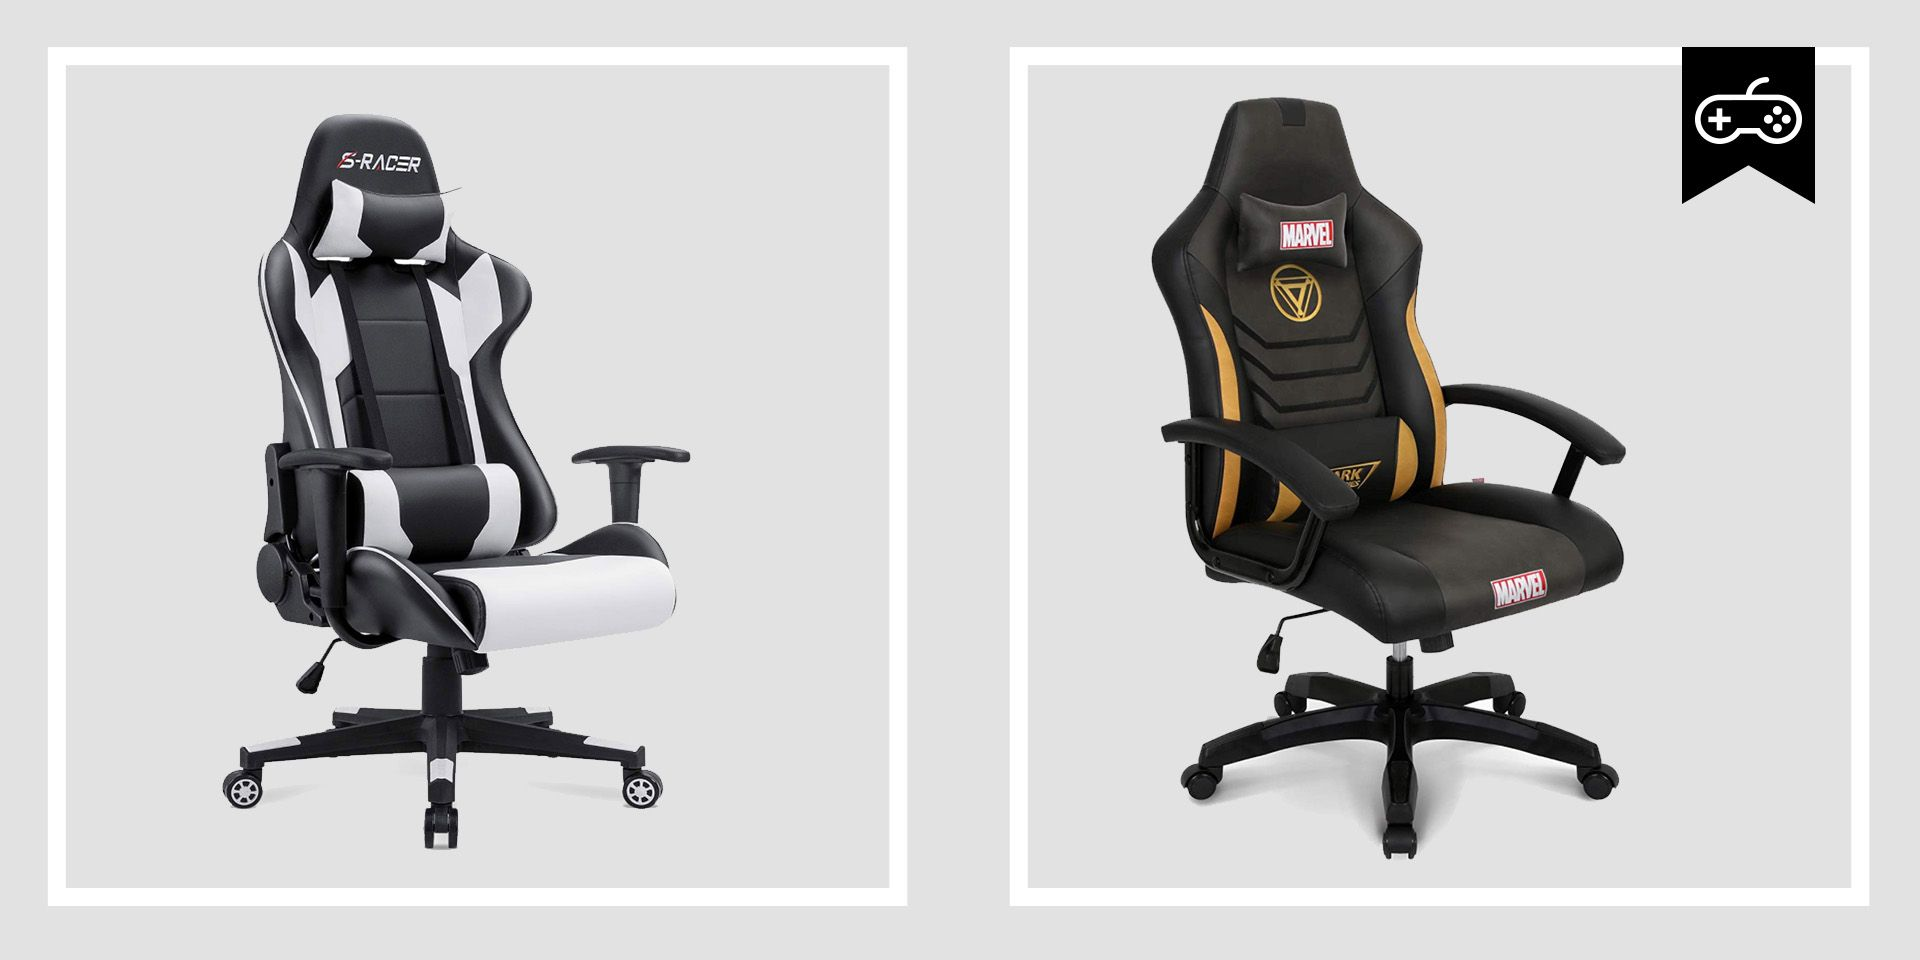 10 Best Gaming Chairs 2019 - Cheap Seats for Playing Video Games